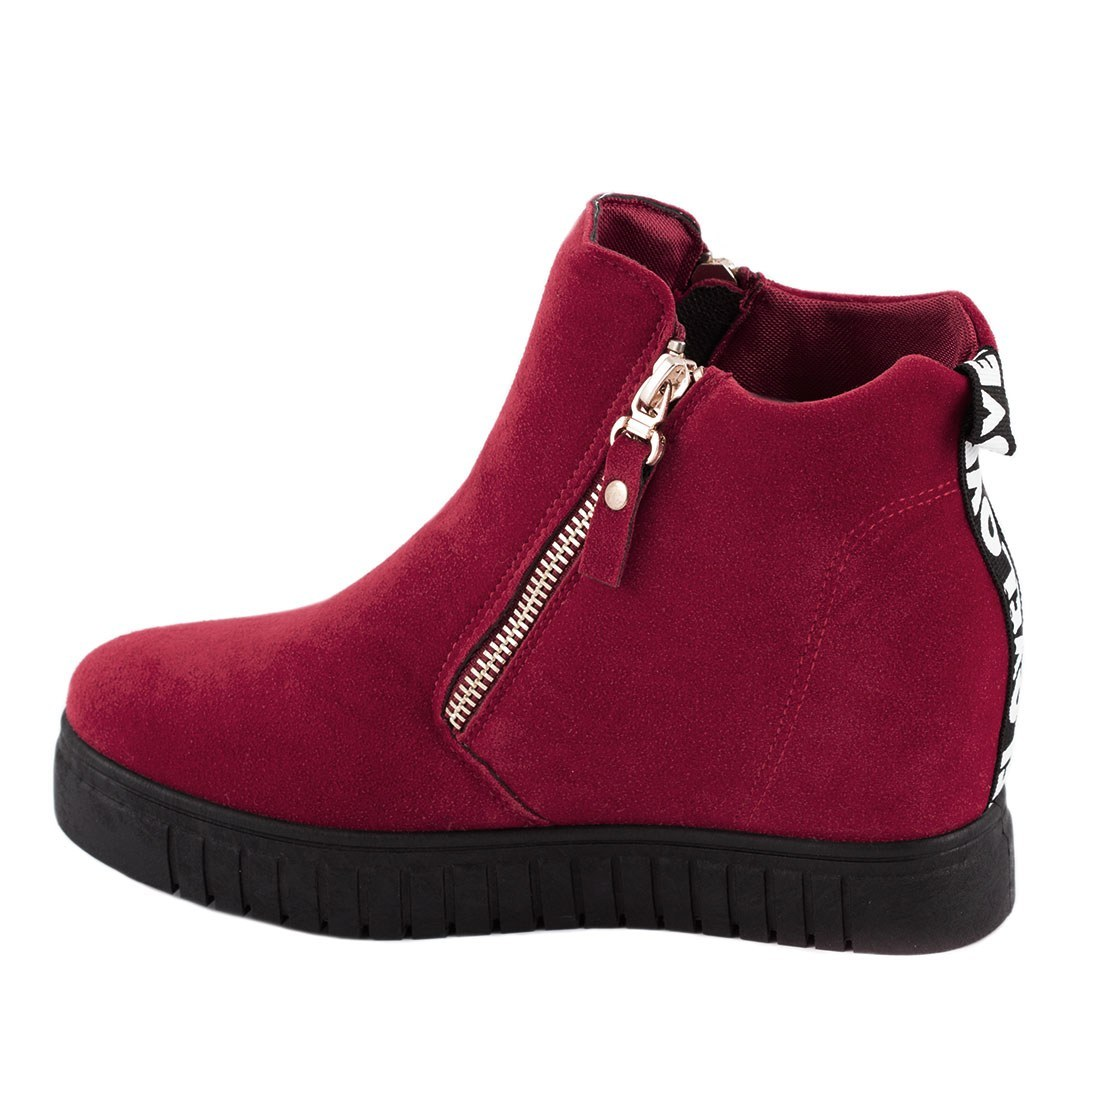 Sneakers de dama cu talpa ortopedica AN8227-RED